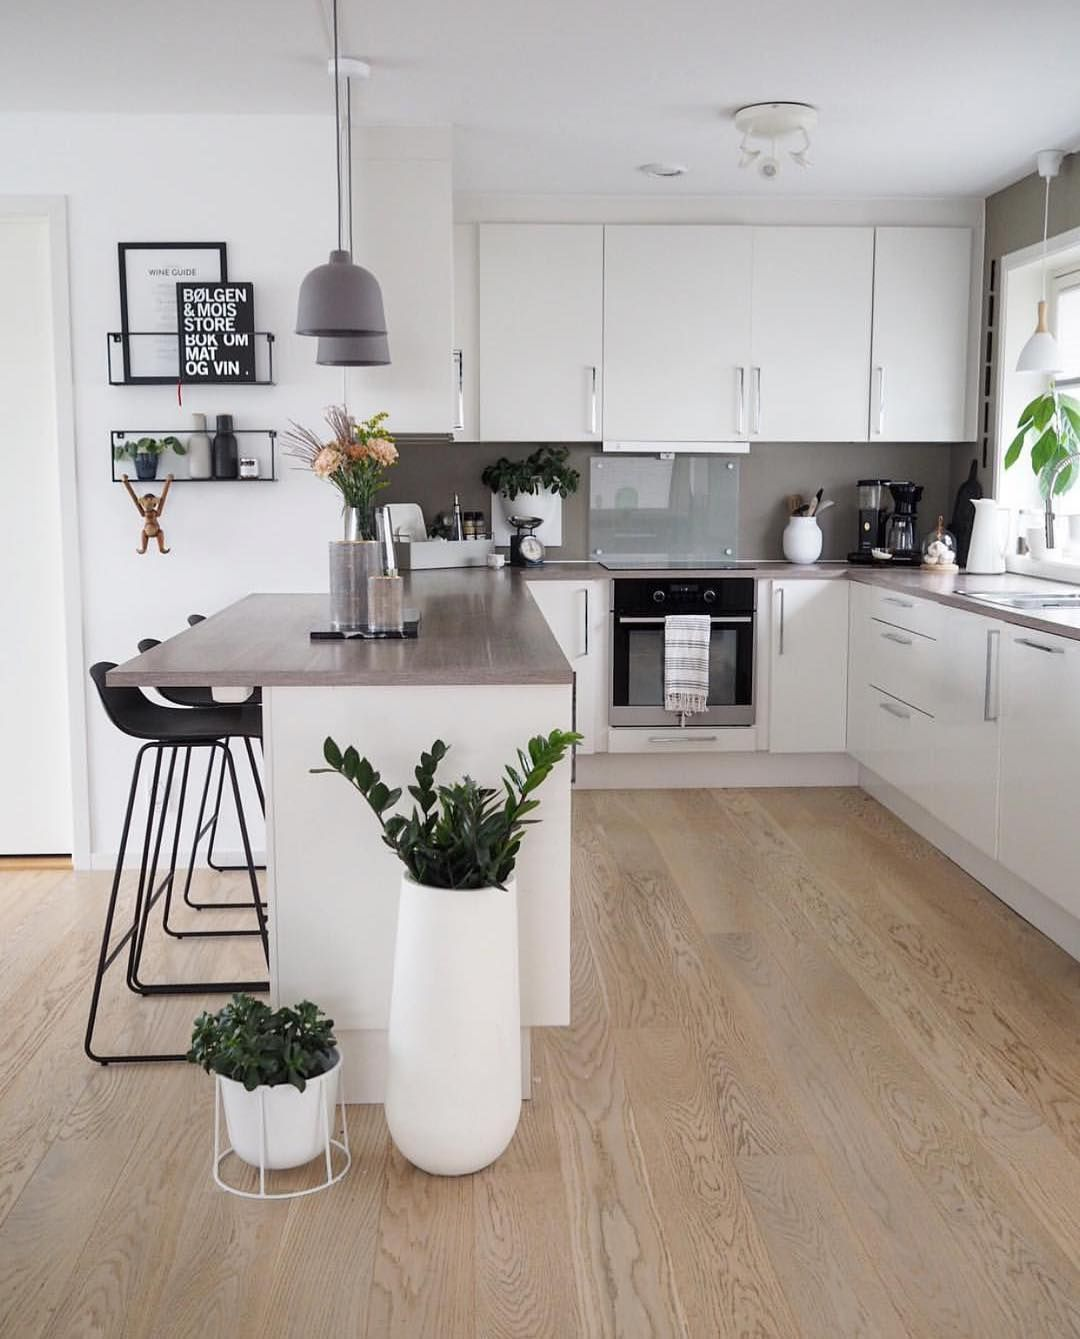 Mynordicroom On Instagram We Love This Beautiful Kitchen In Happy Habitat S Home Read More About Cuisine Moderne Cuisine Appartement Cuisines Dans Salon